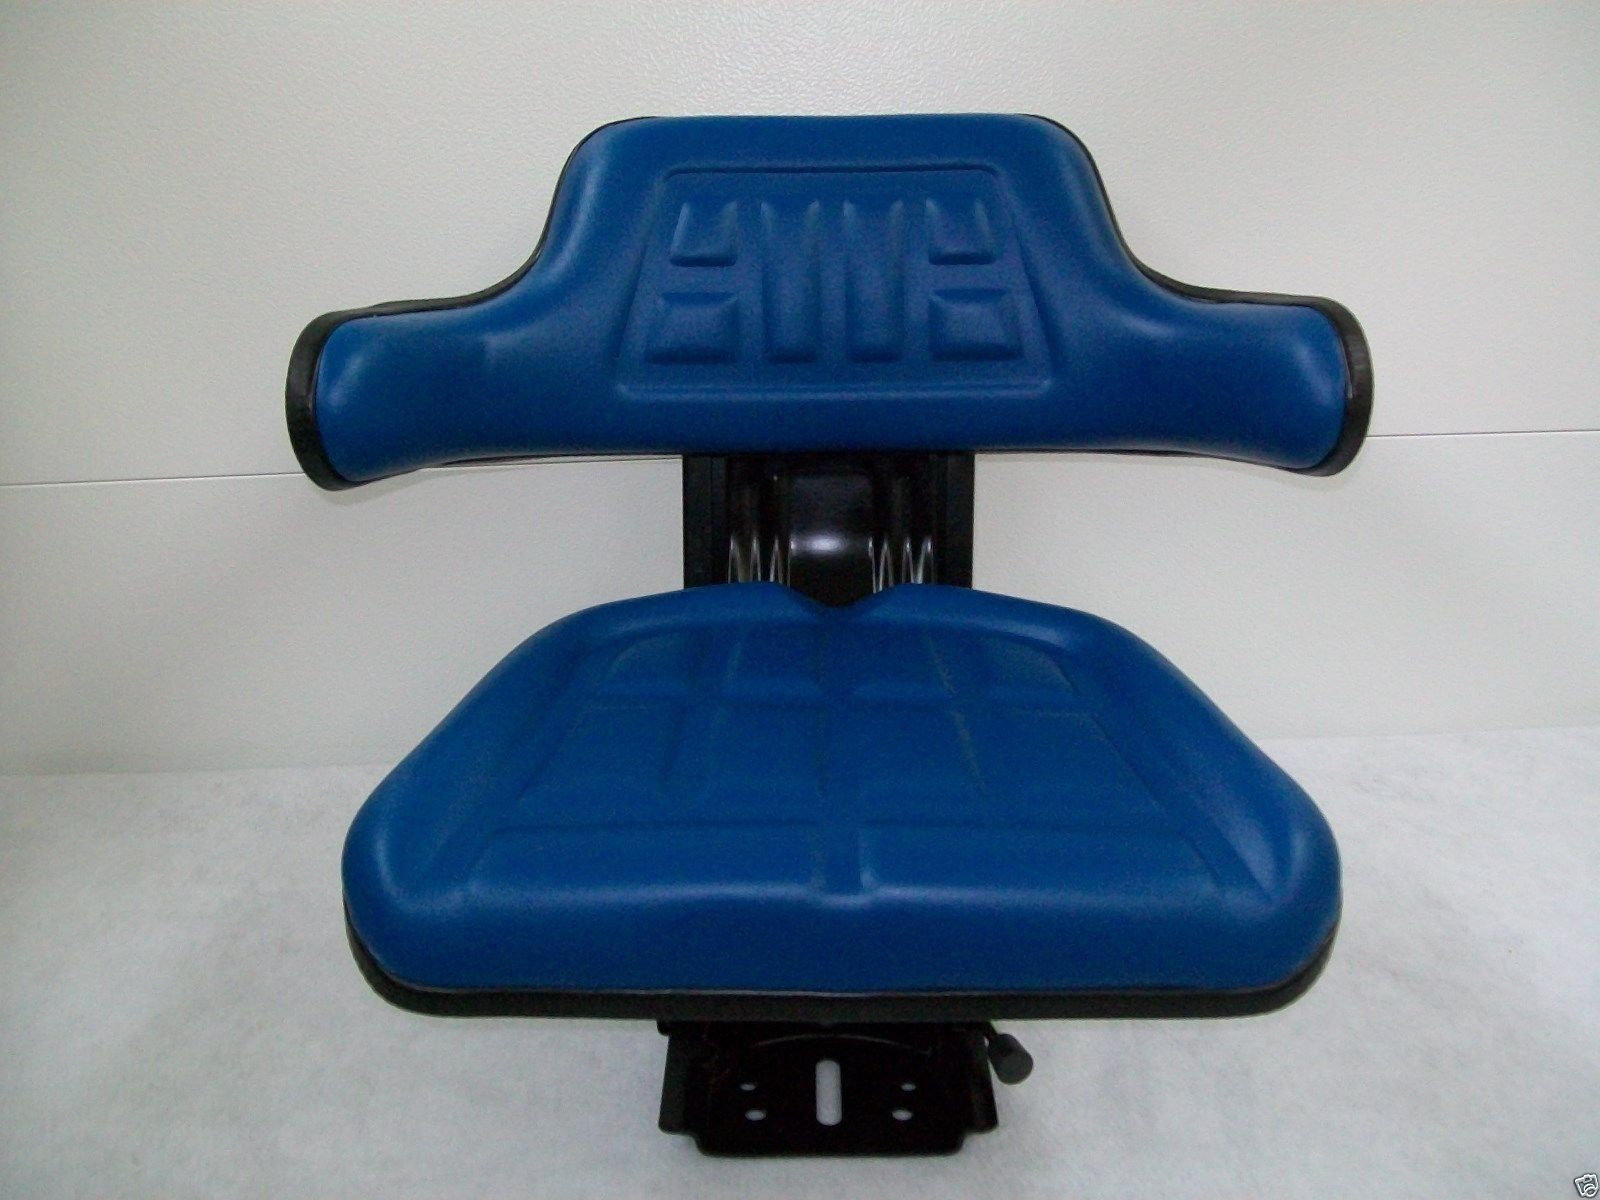 SUSPENSION SEAT FORD TRACTOR BLUE 2000, 2600, 2610, 3000, 4000, 3600, 4600,  3910 #IC